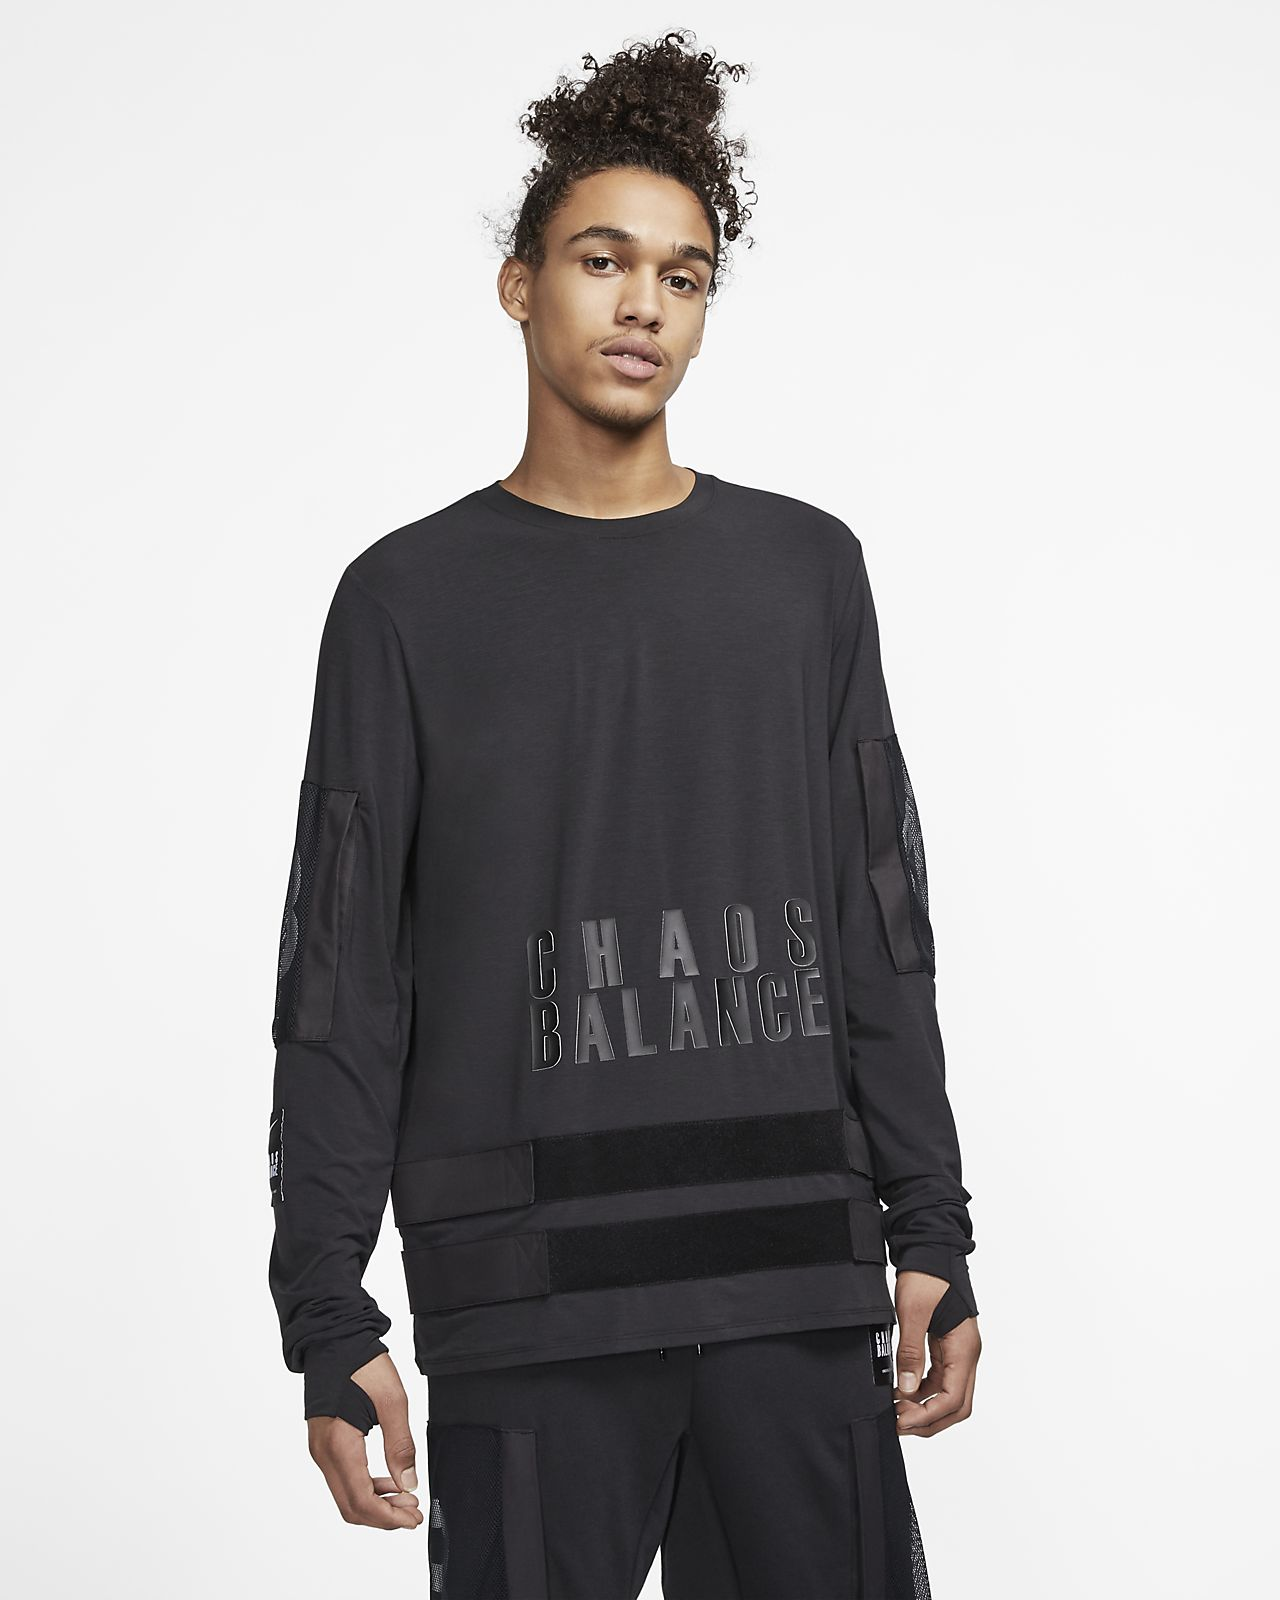 Nike x Undercover Men's Long-Sleeve Top